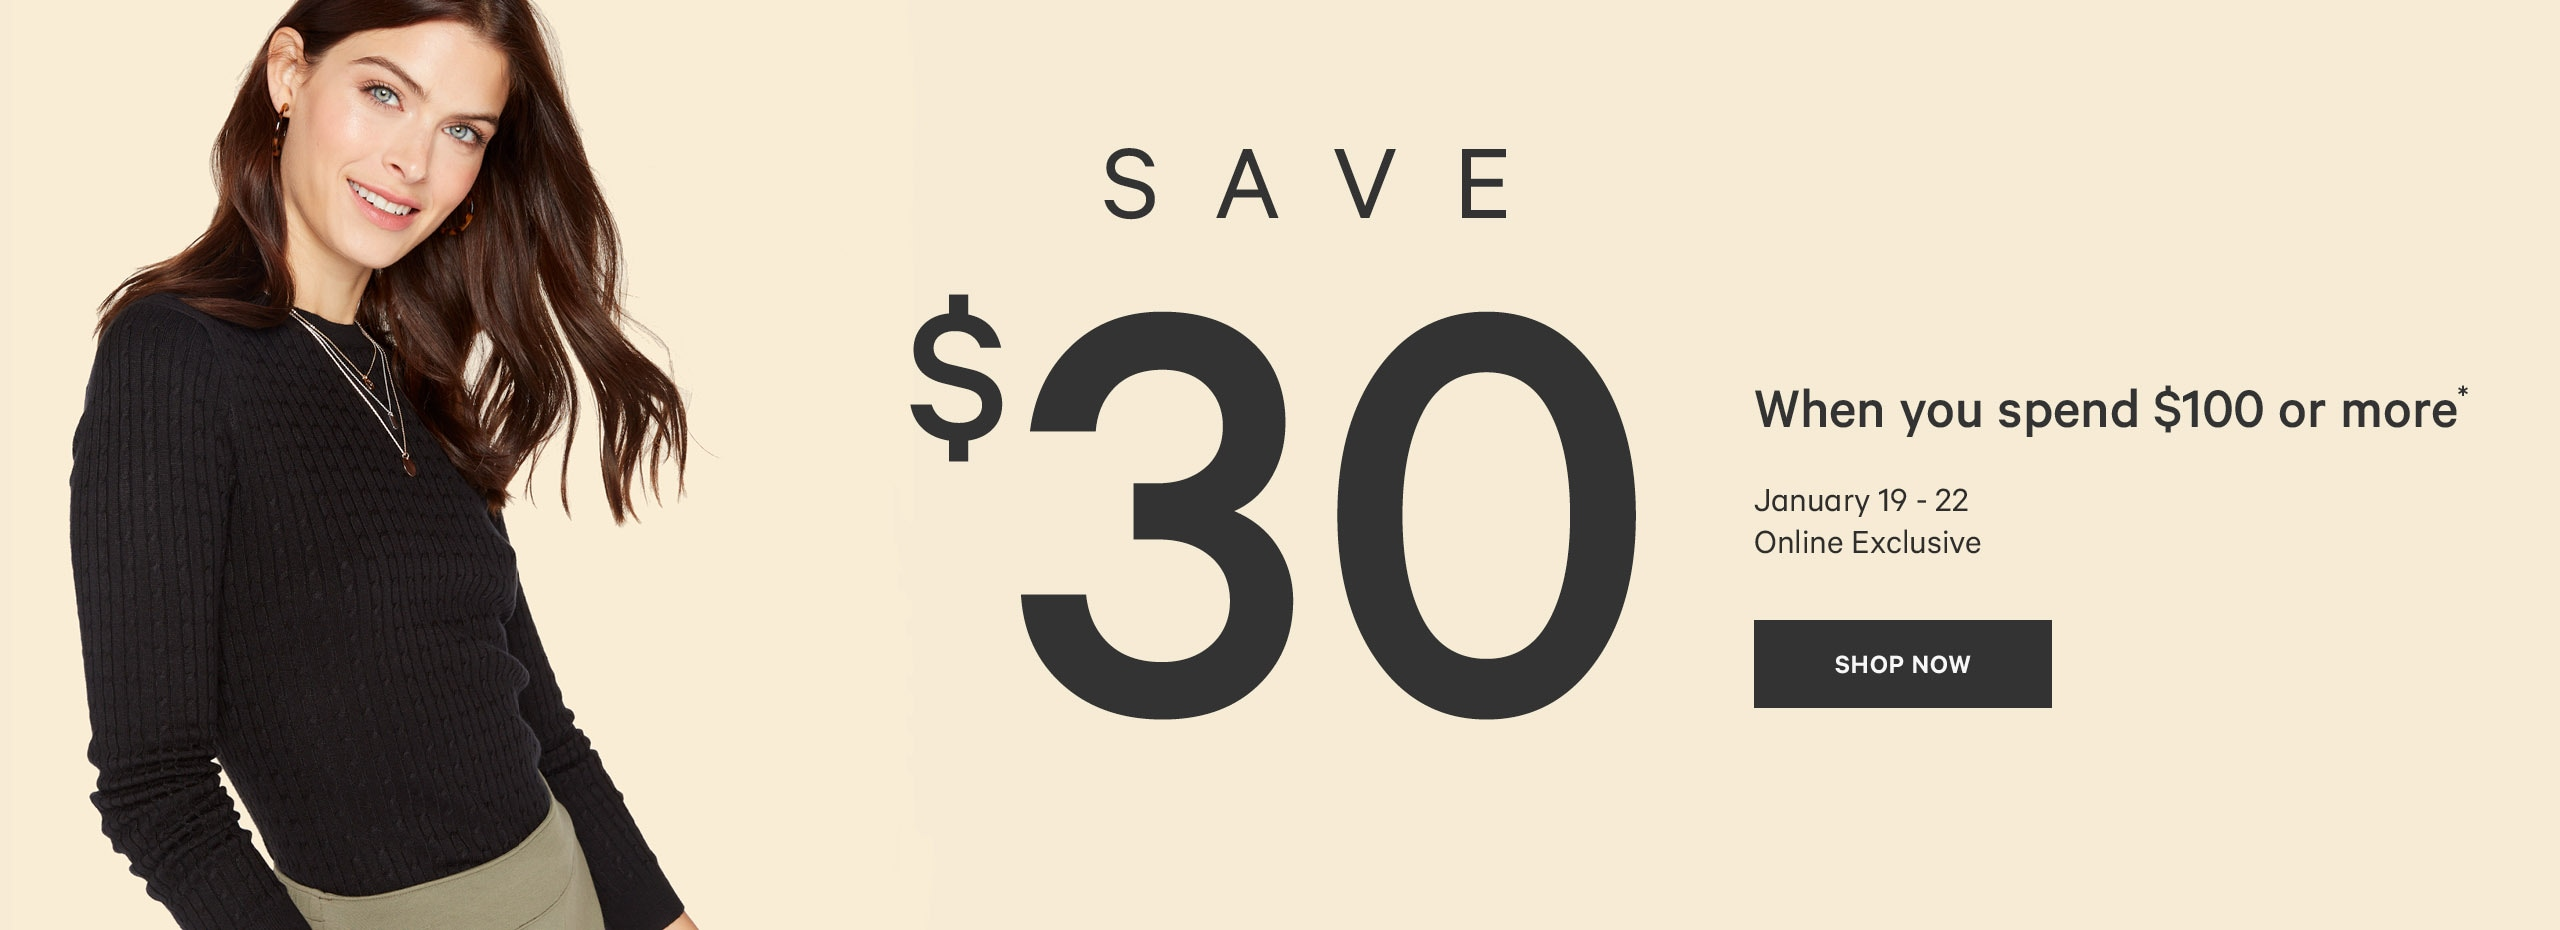 Save 30 dollars when you spend 100 dollars